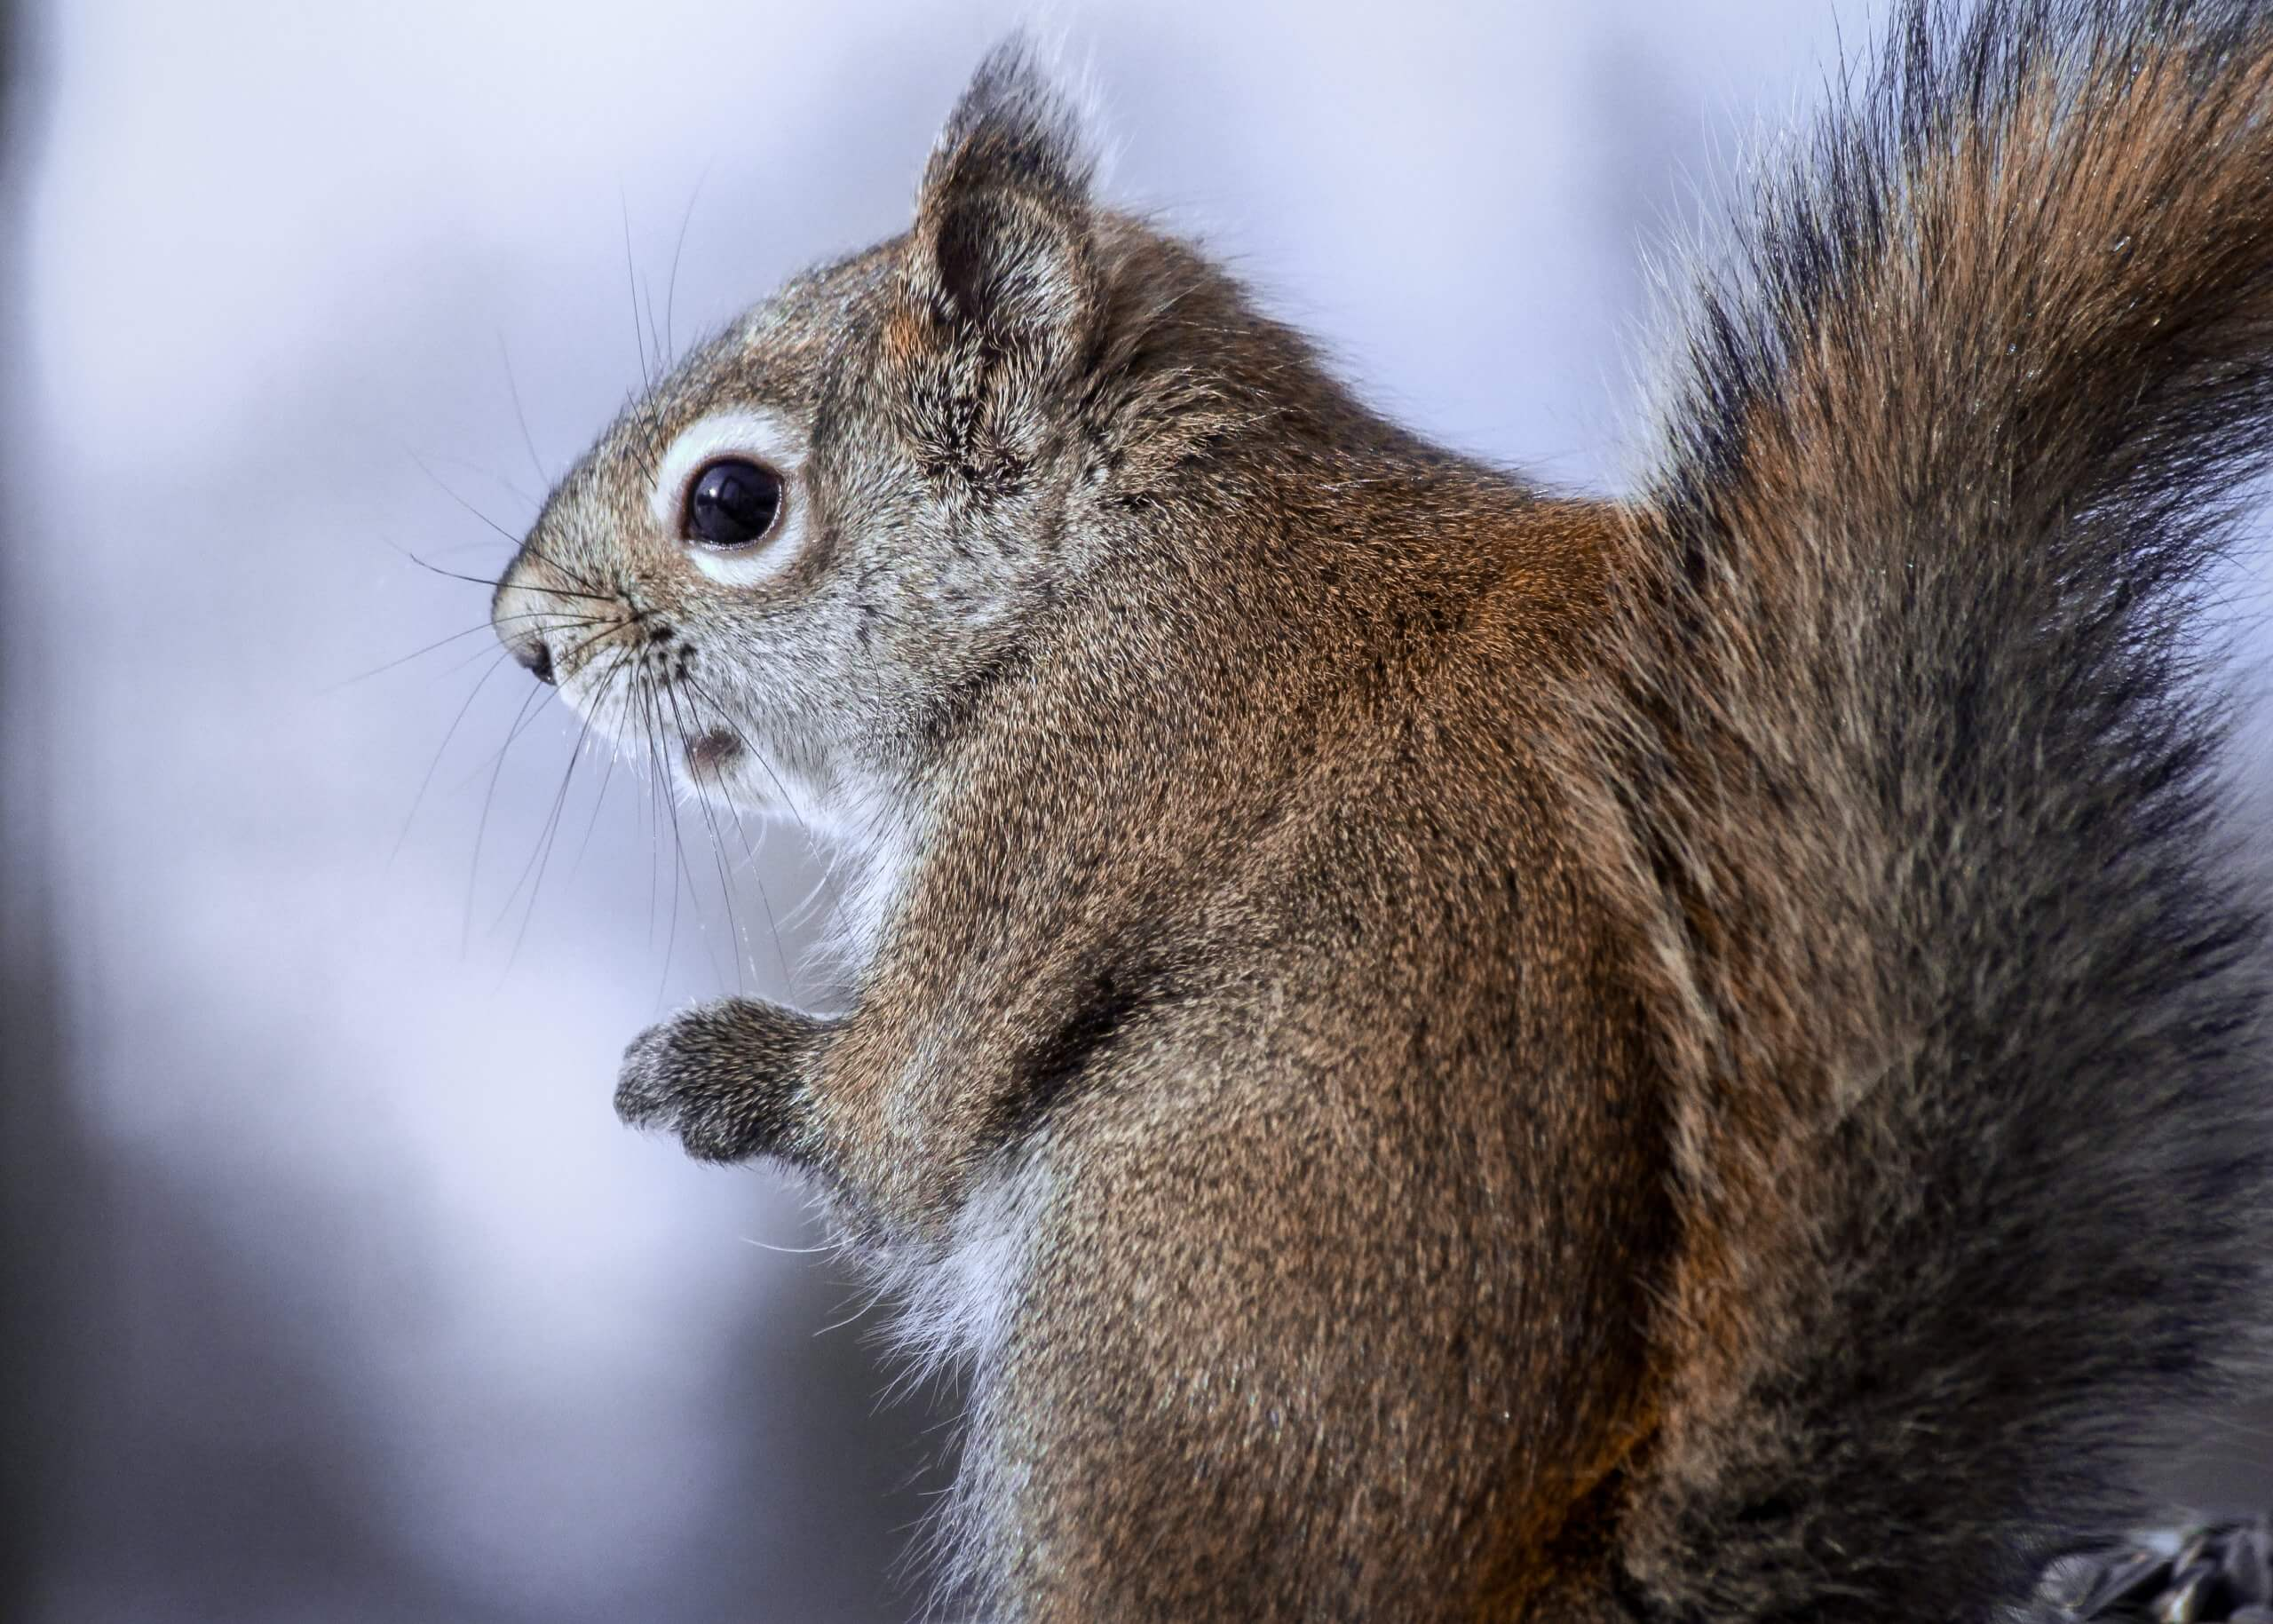 A curious red squirrel sits with folded hands and a big bushy tail